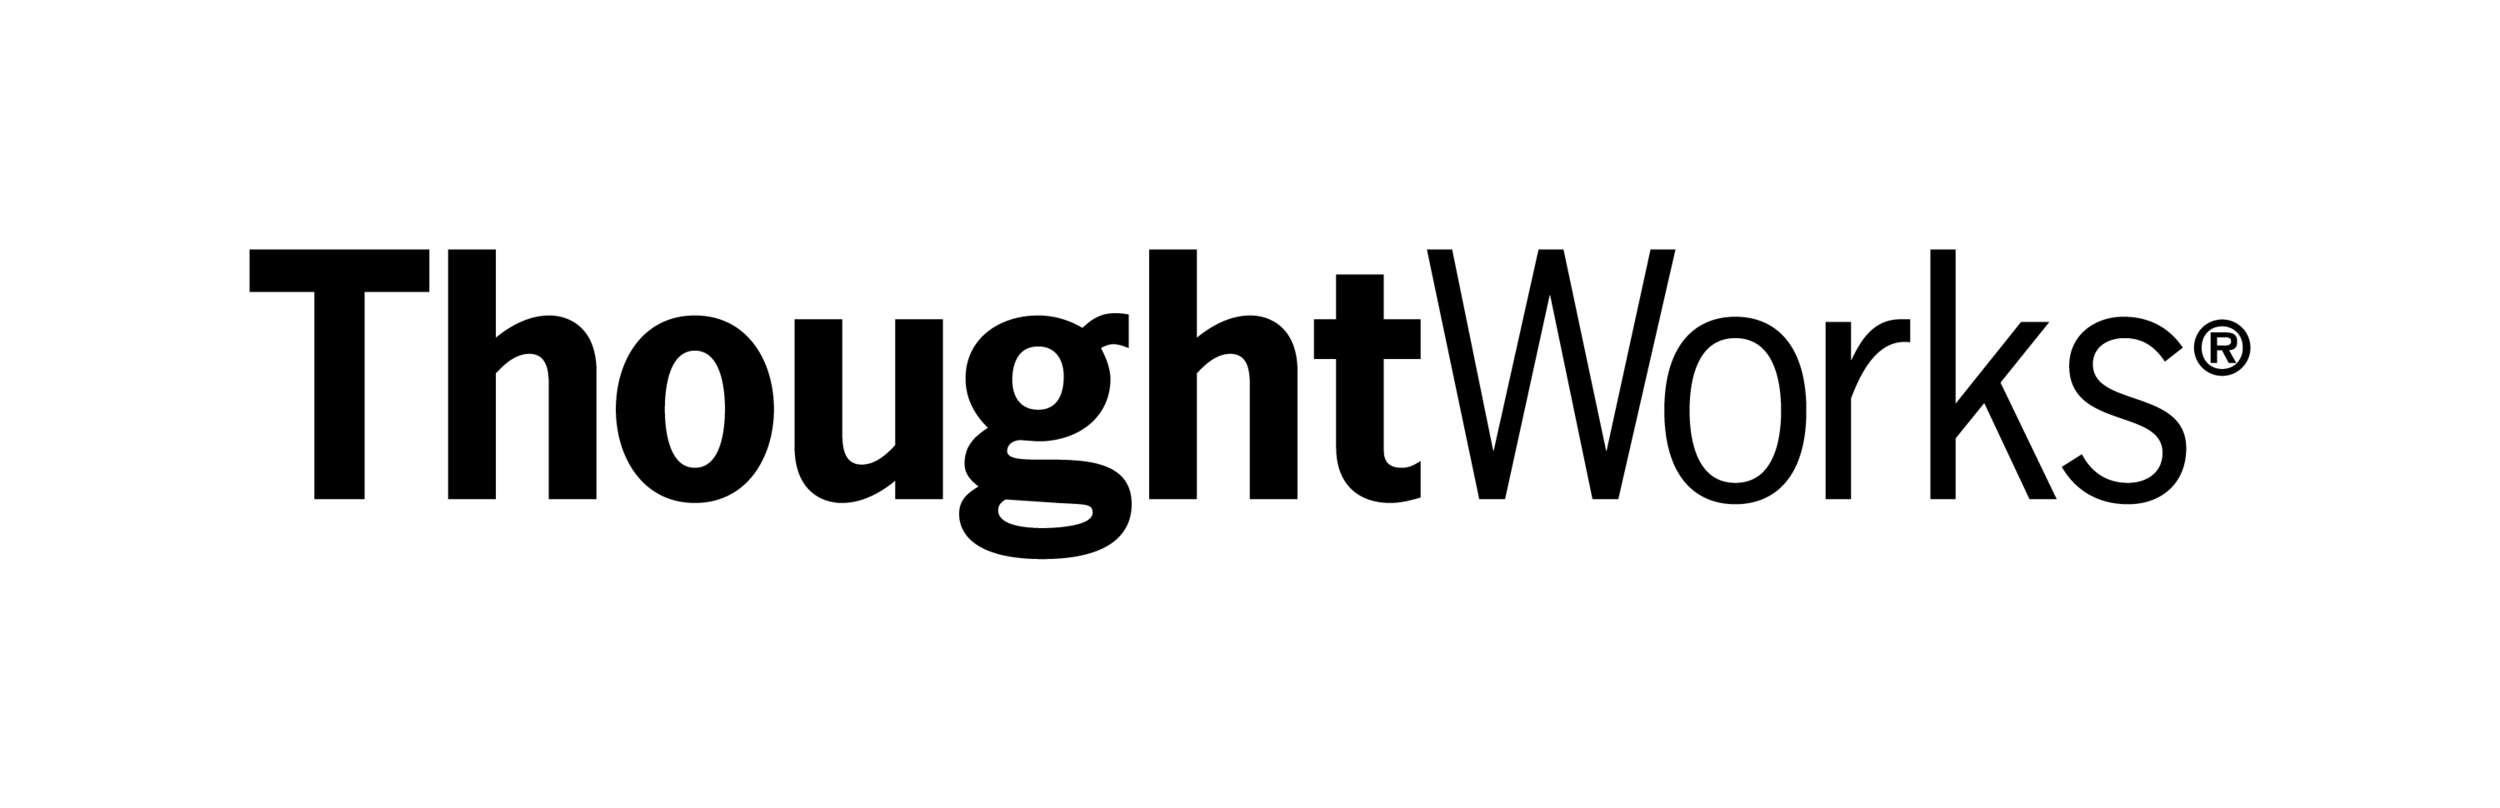 ThoughtWorks-logo-transpare.png